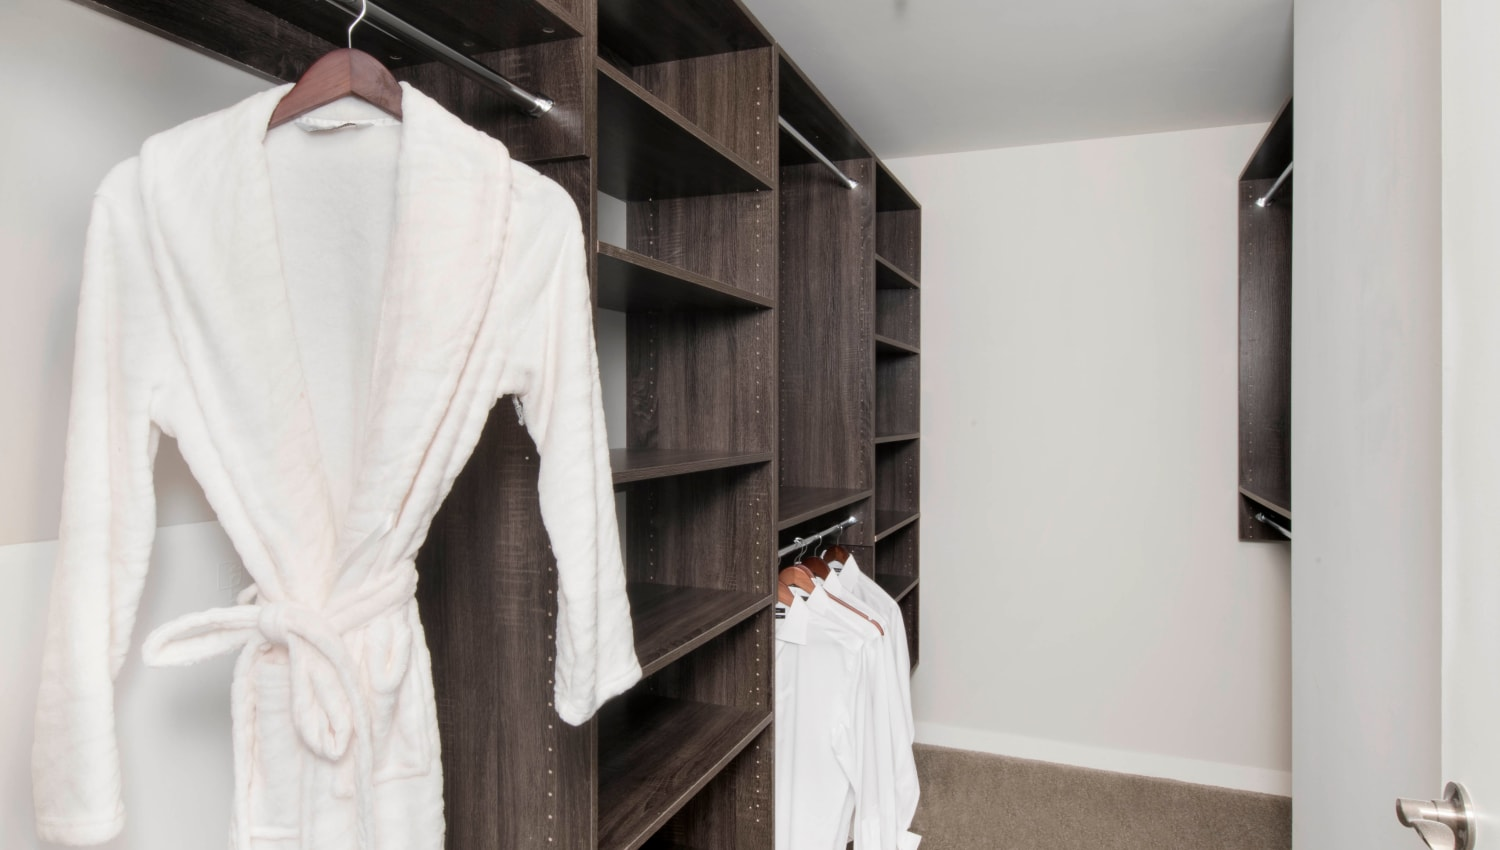 Large walk-in closet with custom built-in shelving in a model home's bedroom at Olympus Harbour Island in Tampa, Florida